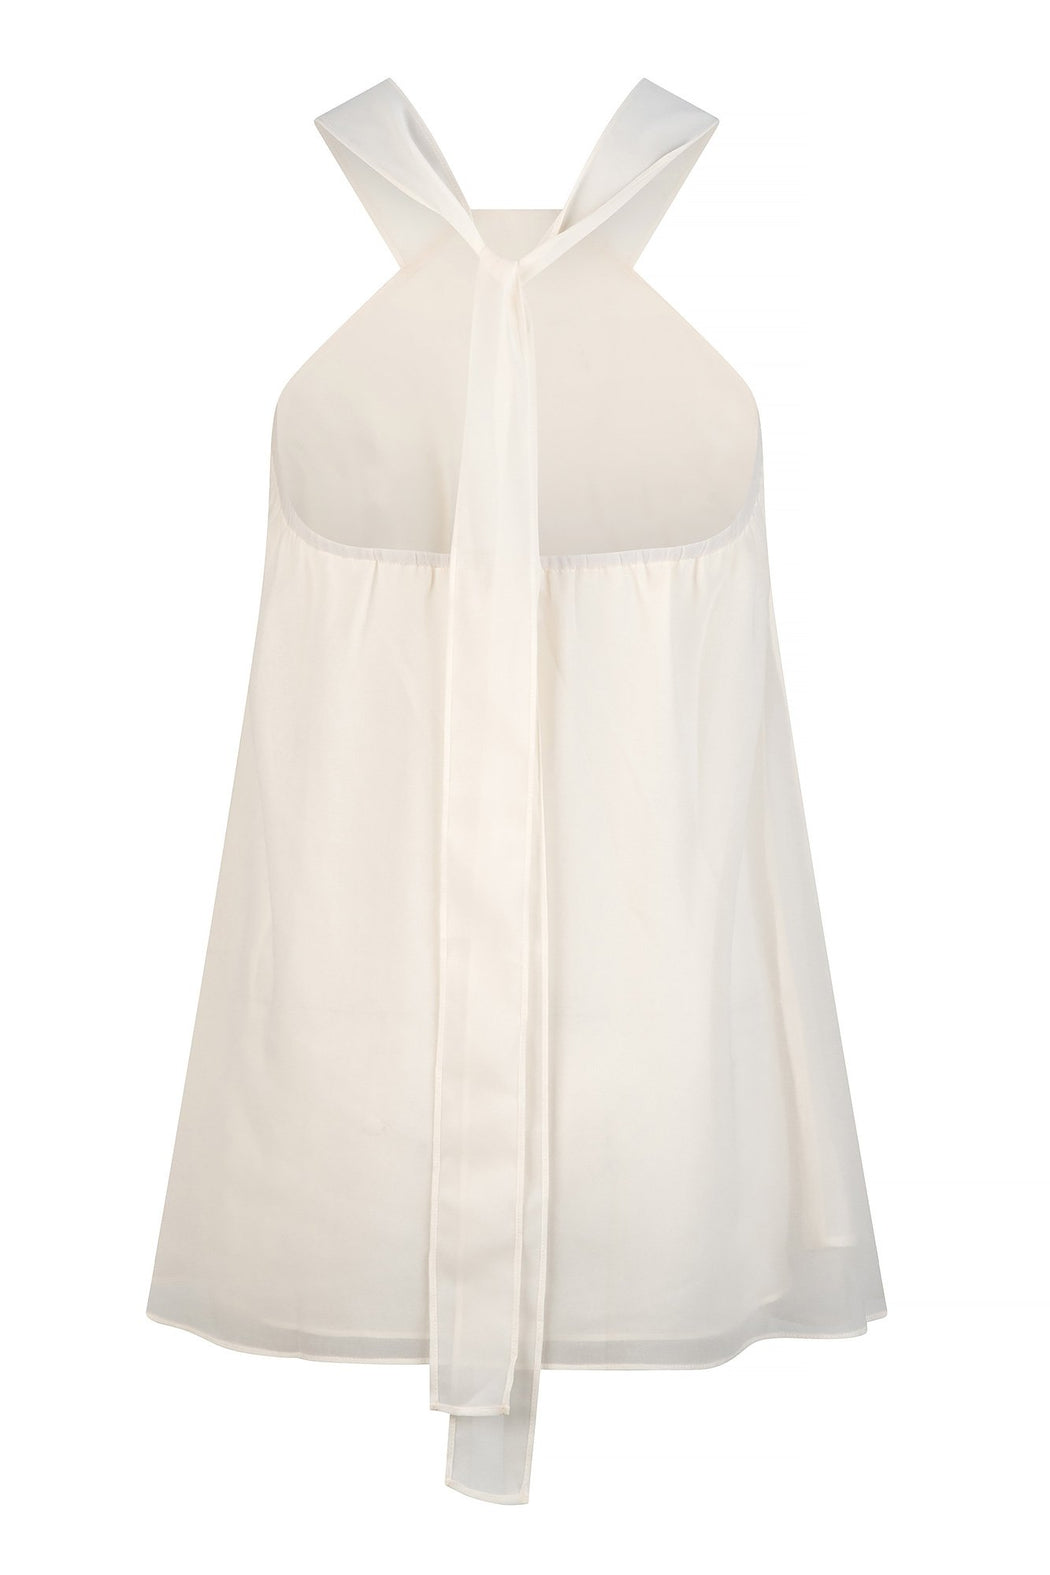 Gianna Top - White